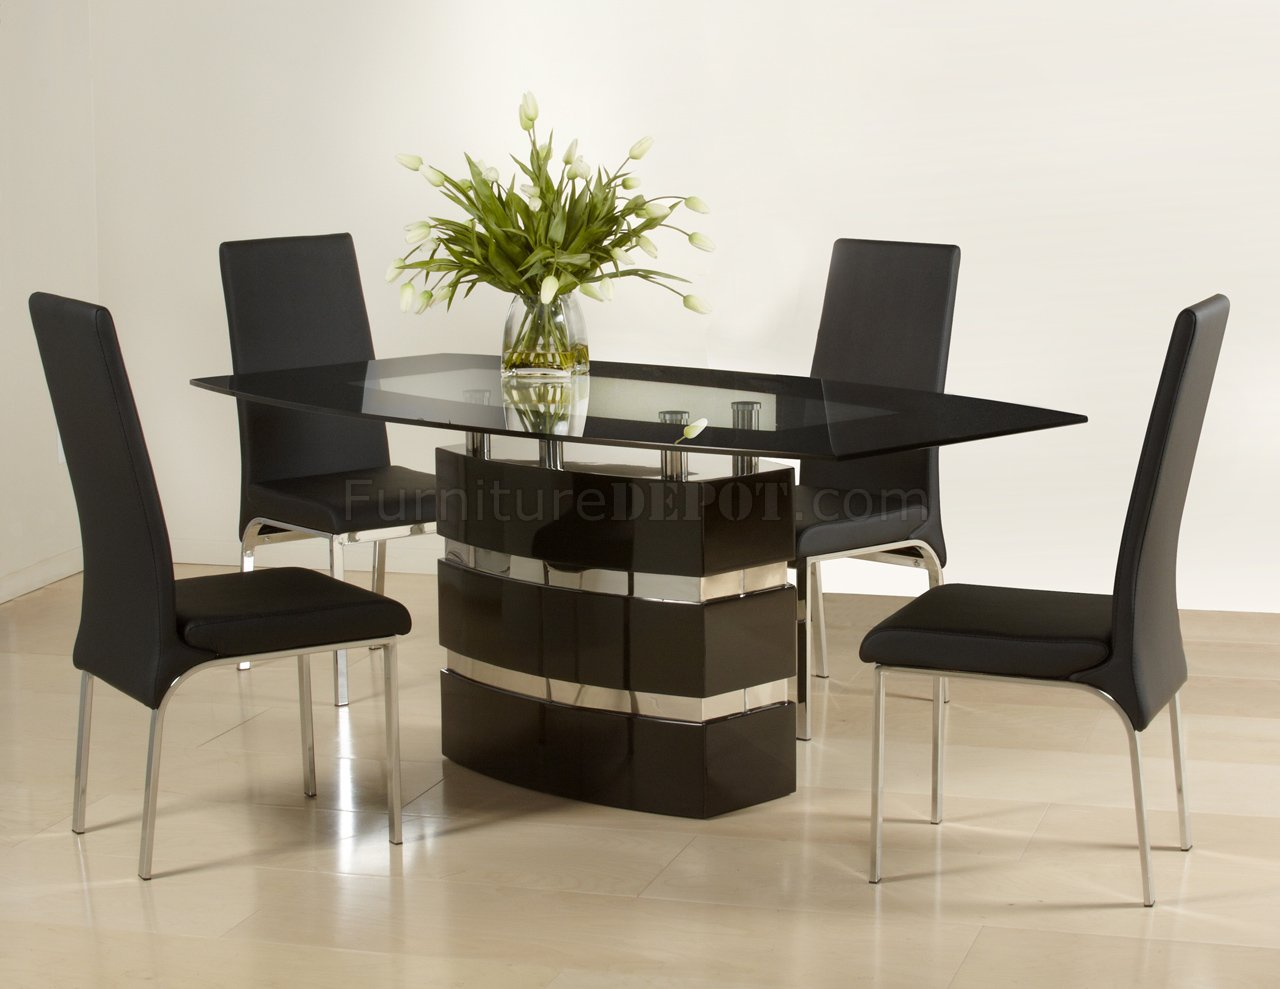 Modern Dining Table And Chairs Black High Gloss Finish Modern Dining Table W Optional Chairs